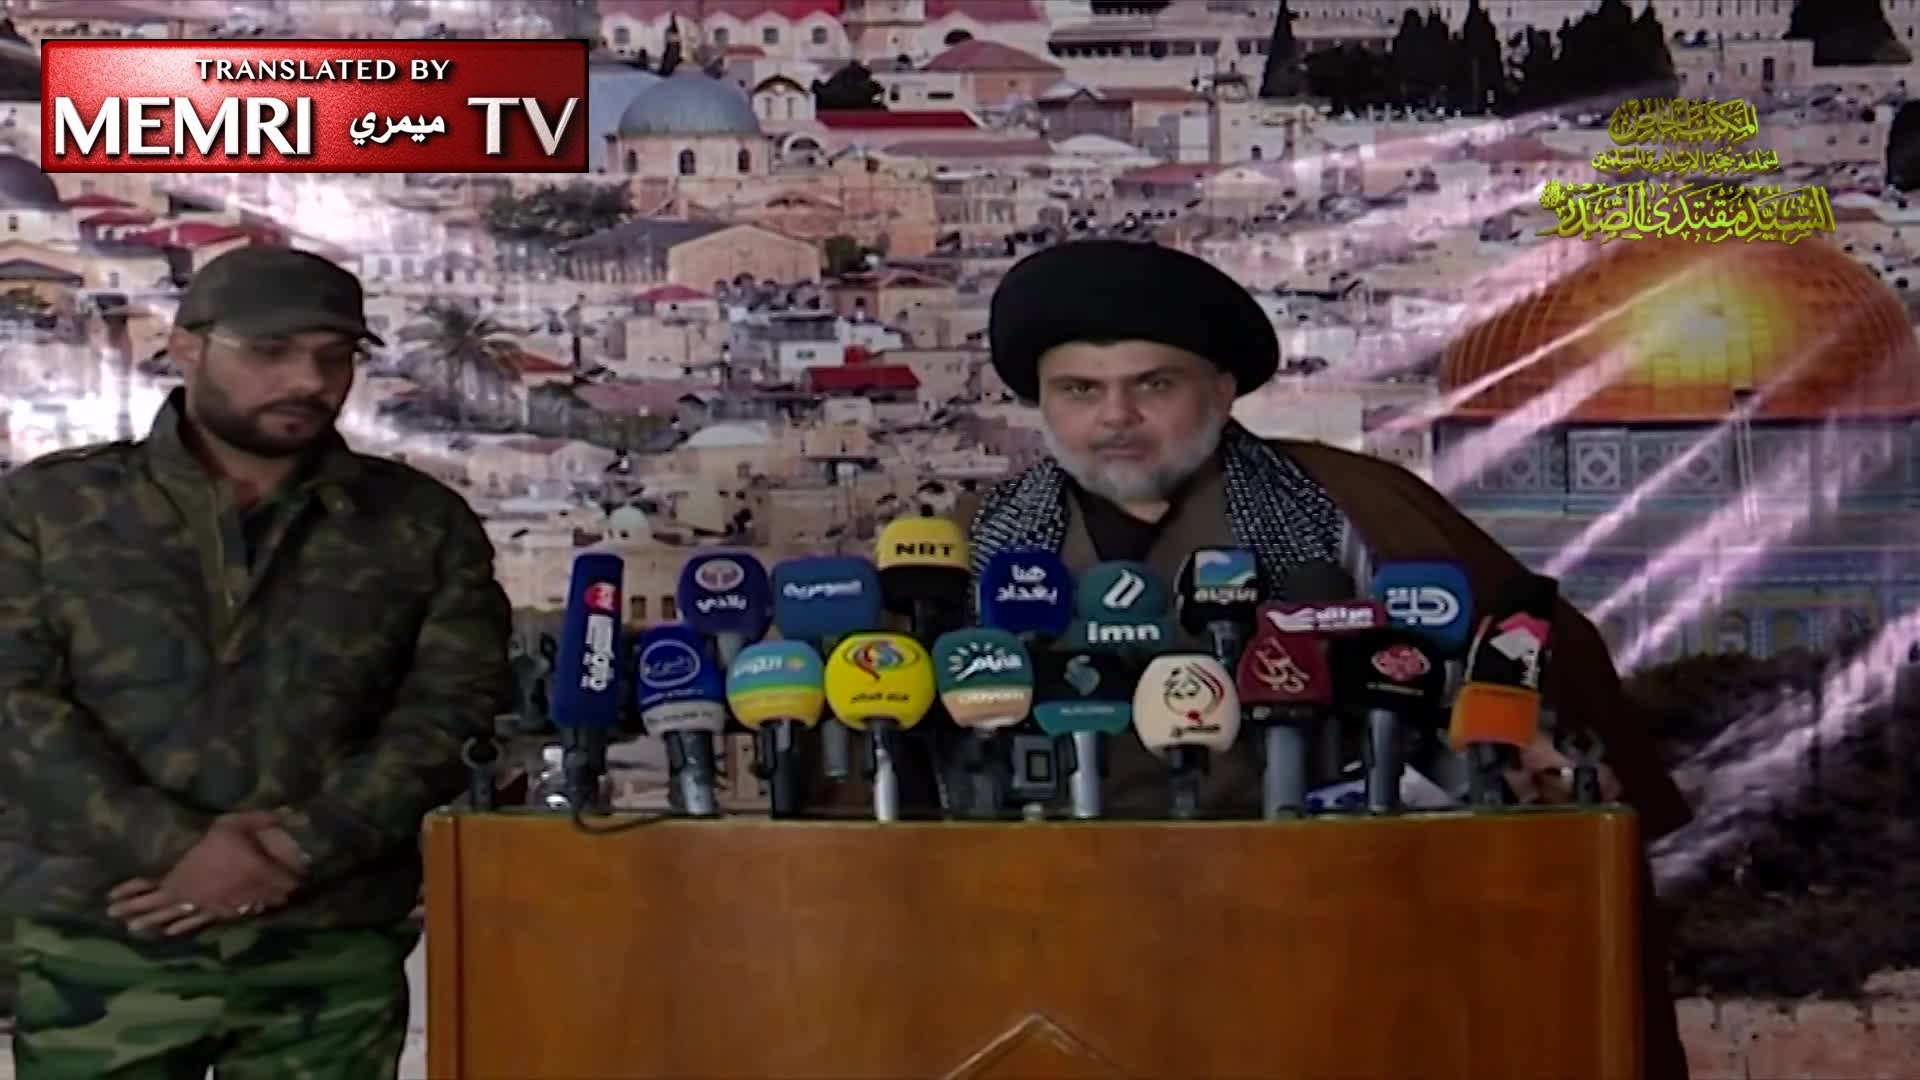 Iraqi Shiite Leader Muqtada Al-Sadr on President Trump's Jerusalem Declaration: Israel Had Better Beware, We Can Get to It through Syria